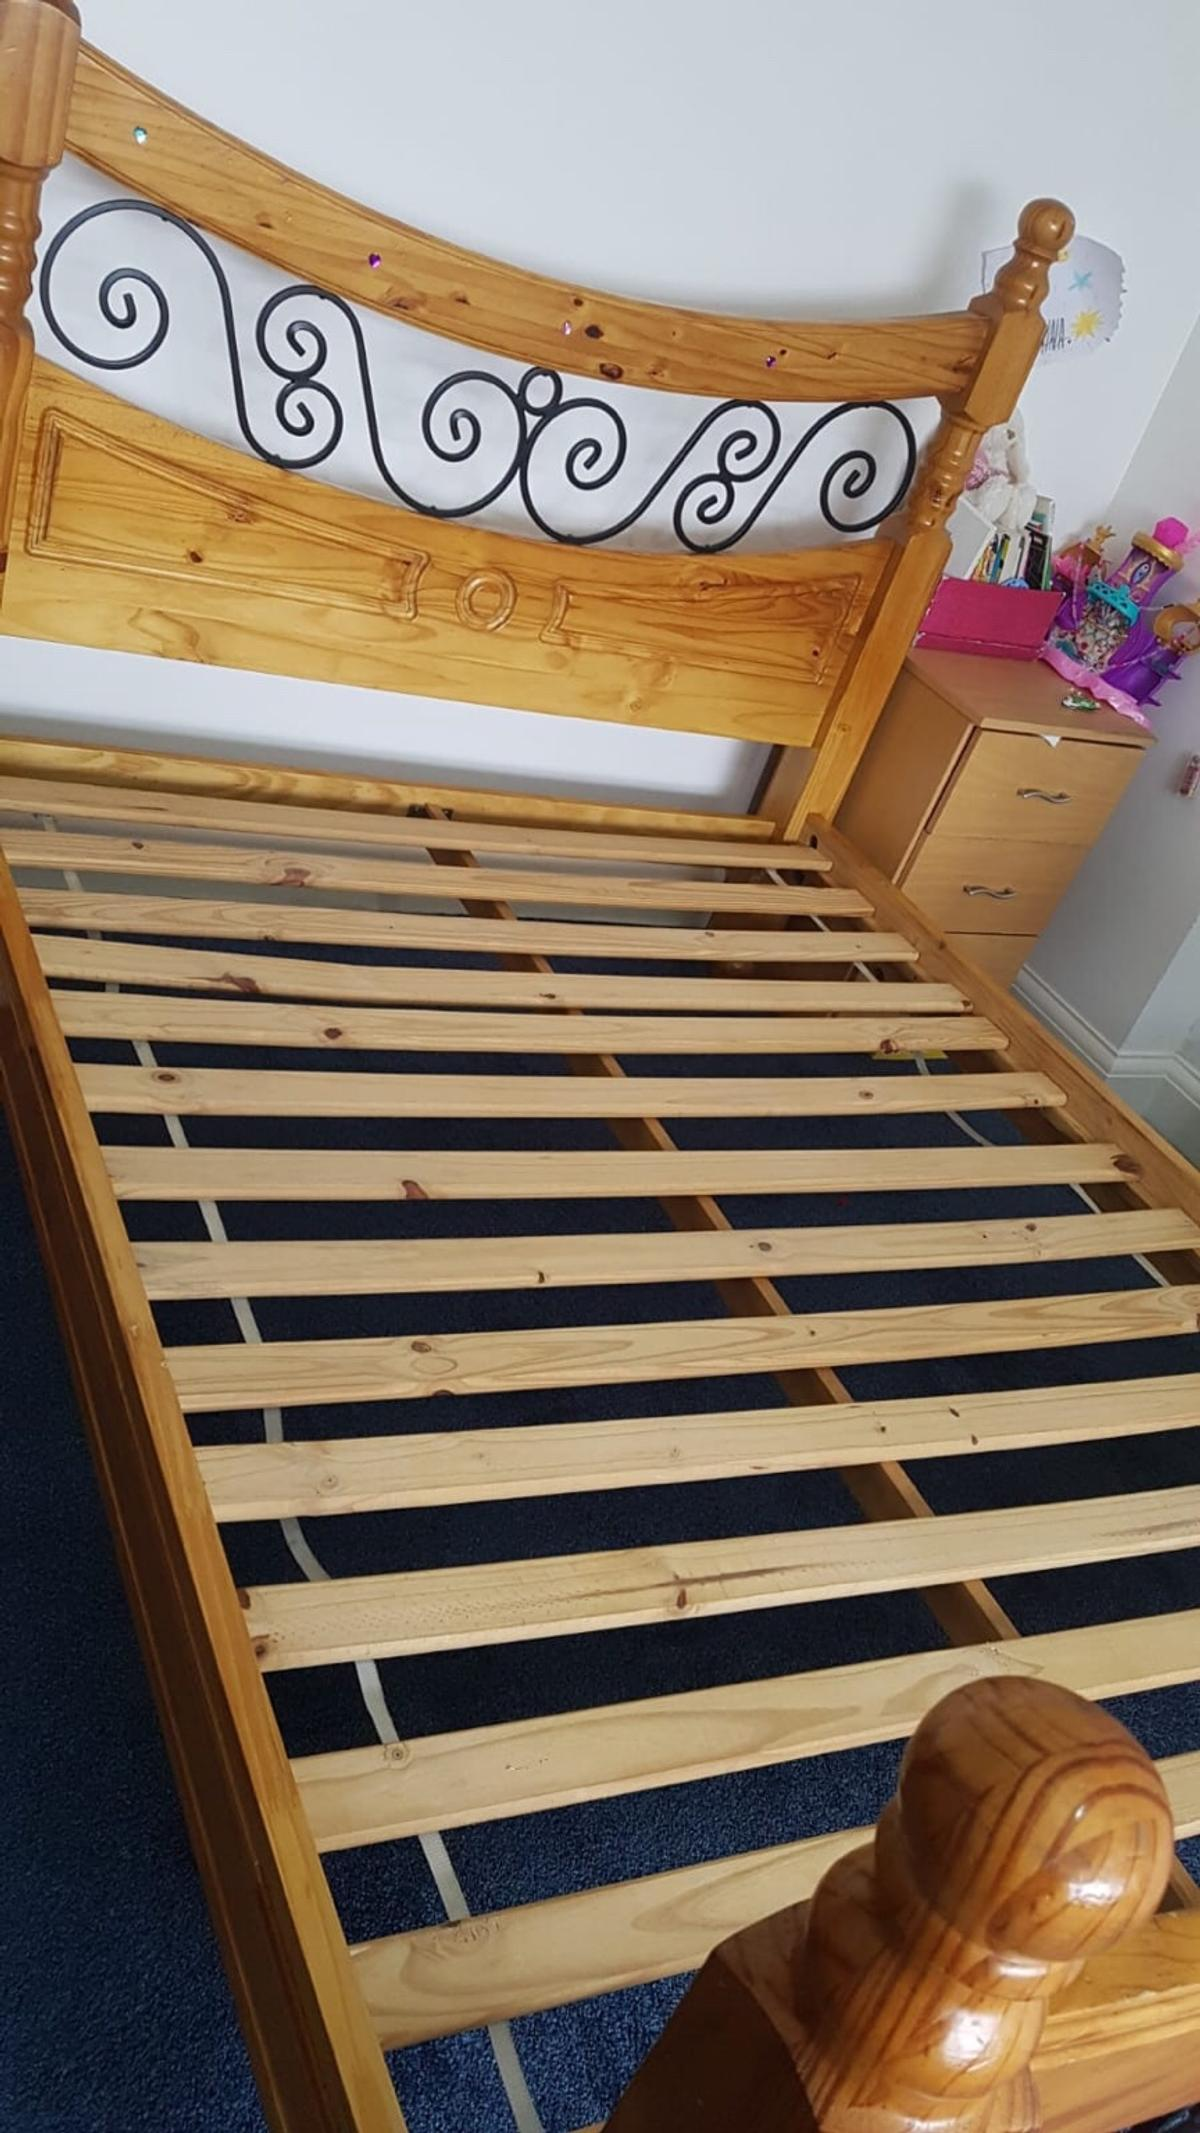 A beautiful double solid pinewood post bed frame with metal spirals in immaculate condition minor scratches but nothing major shows all in pic how bed looks  Slates in perfectly good order extra storage space under bed it' can store suits cases under bed too and under bed storage boxes too Was £300 now on sale for £250'grab a good bargain clearing out my furniture